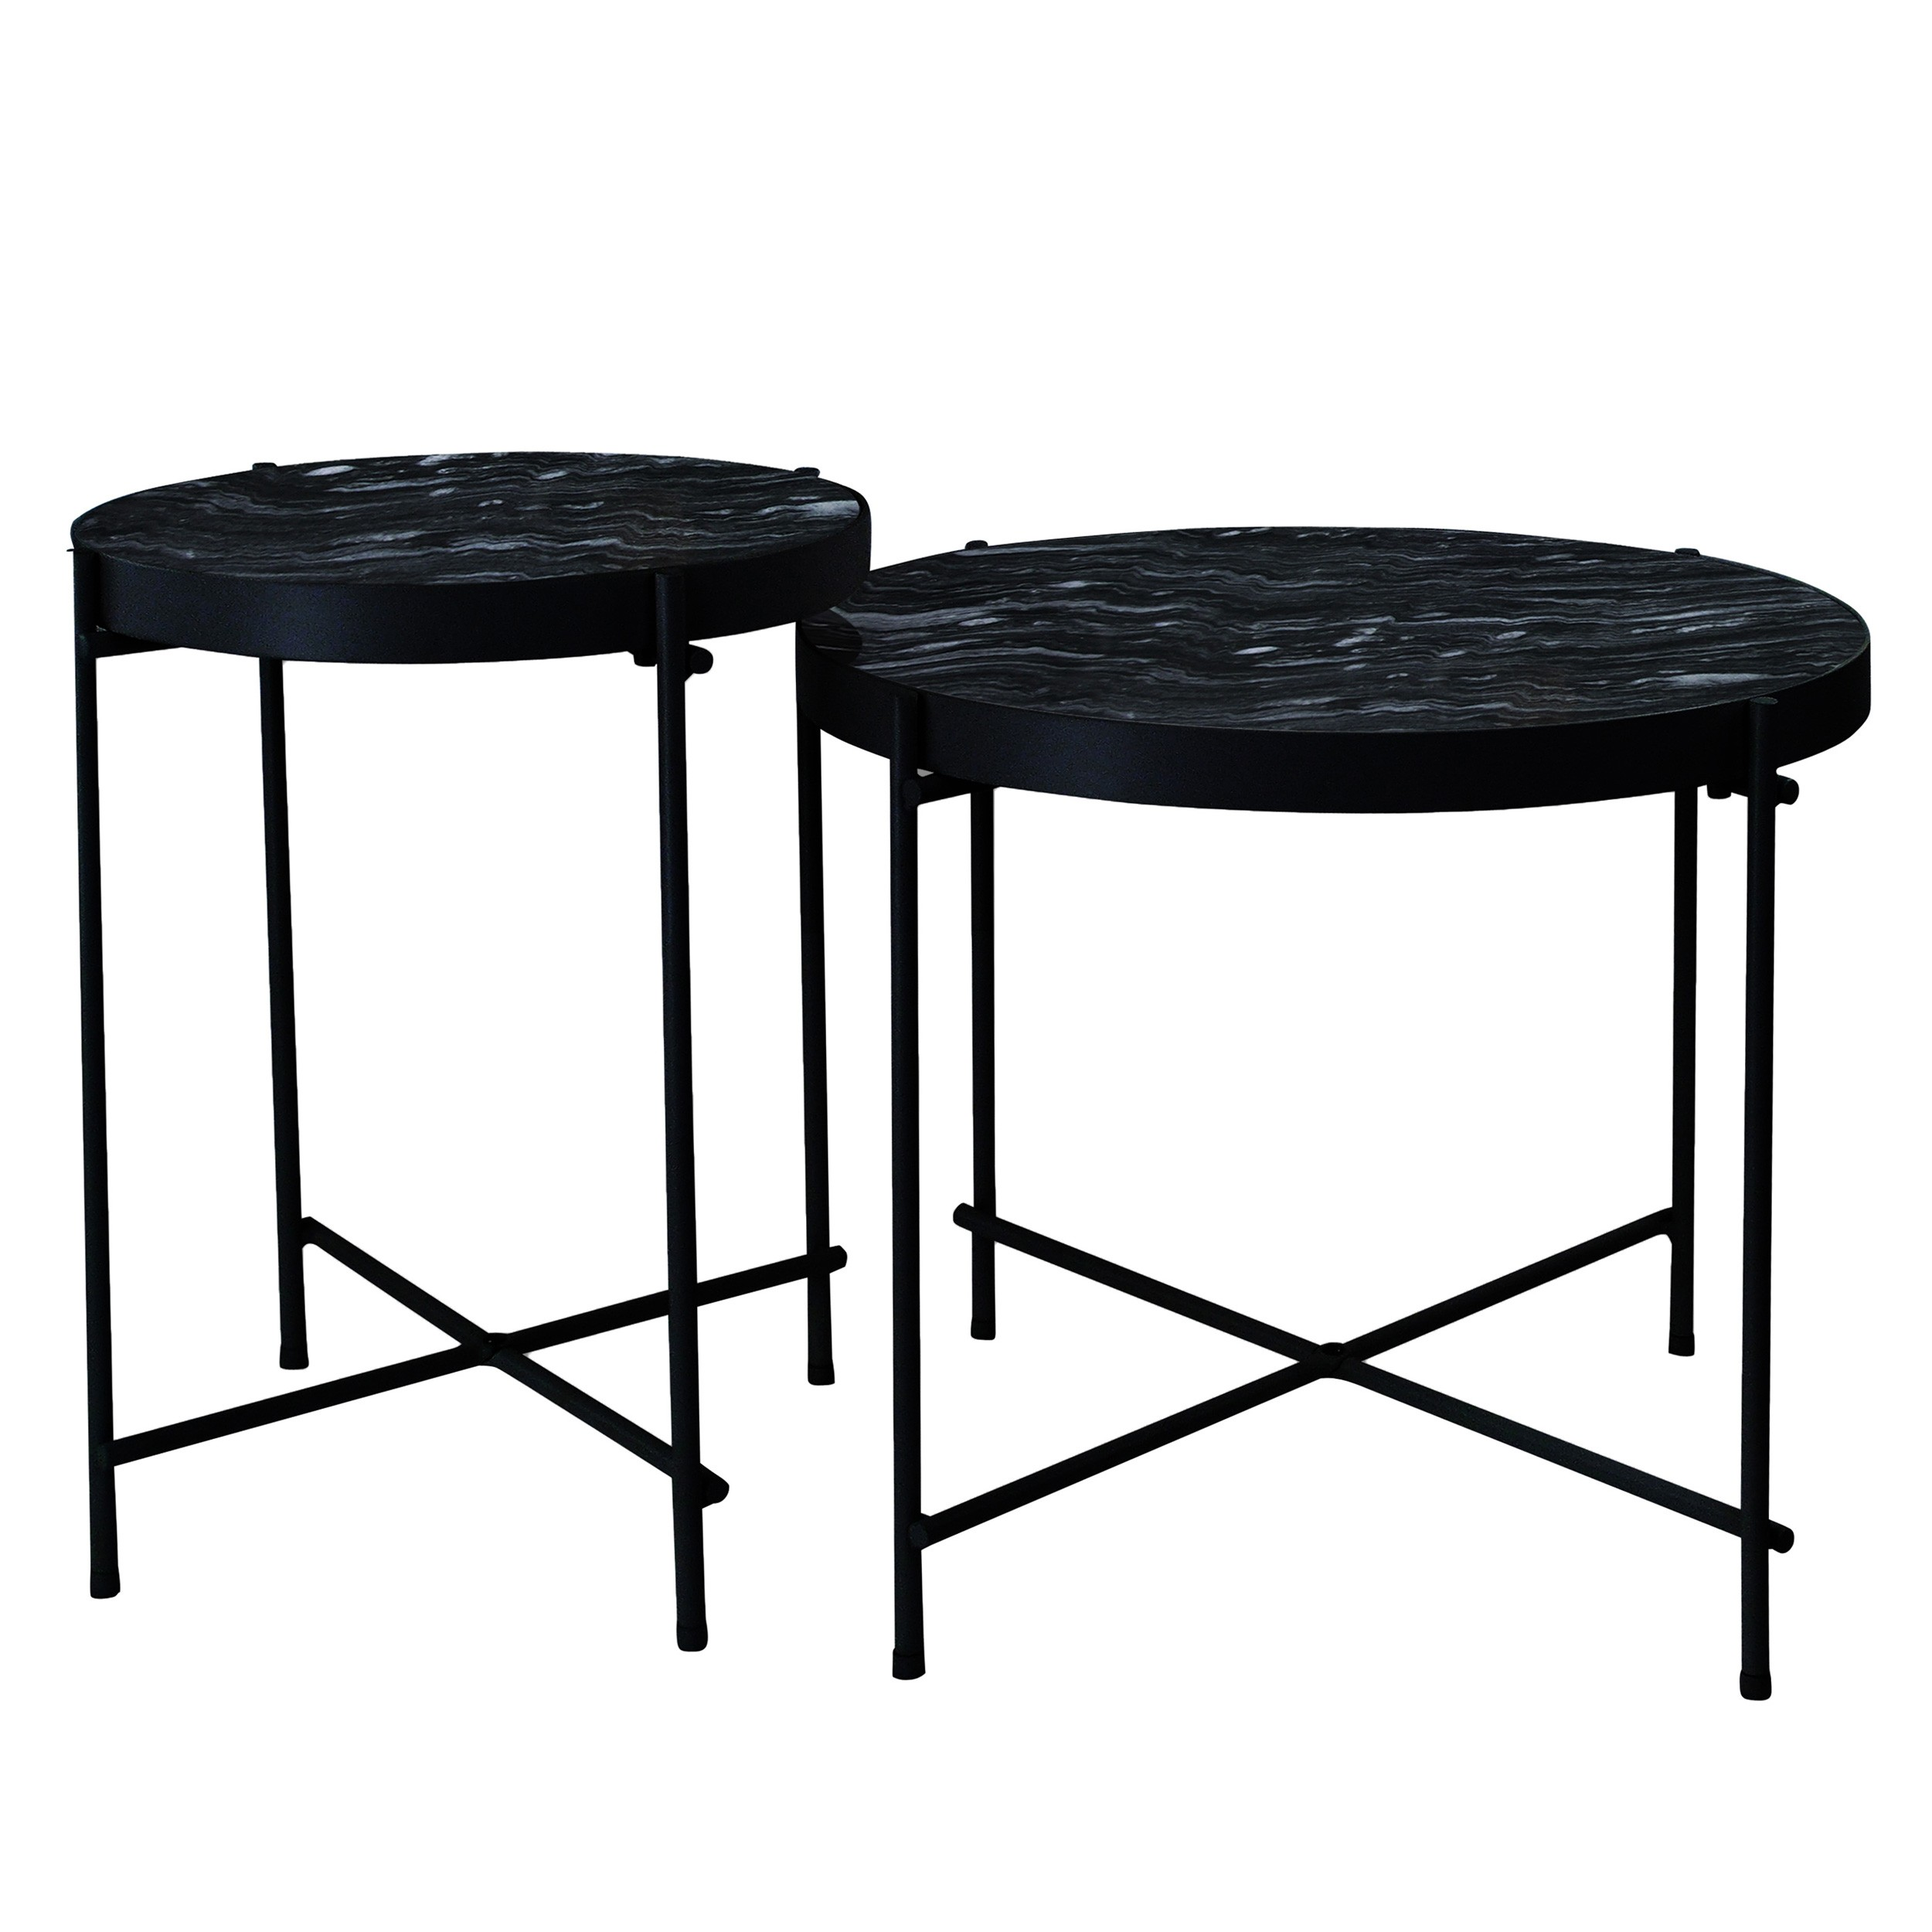 table basse ronde marbre table basse marbre noir table basse ronde marbre noir with table basse. Black Bedroom Furniture Sets. Home Design Ideas